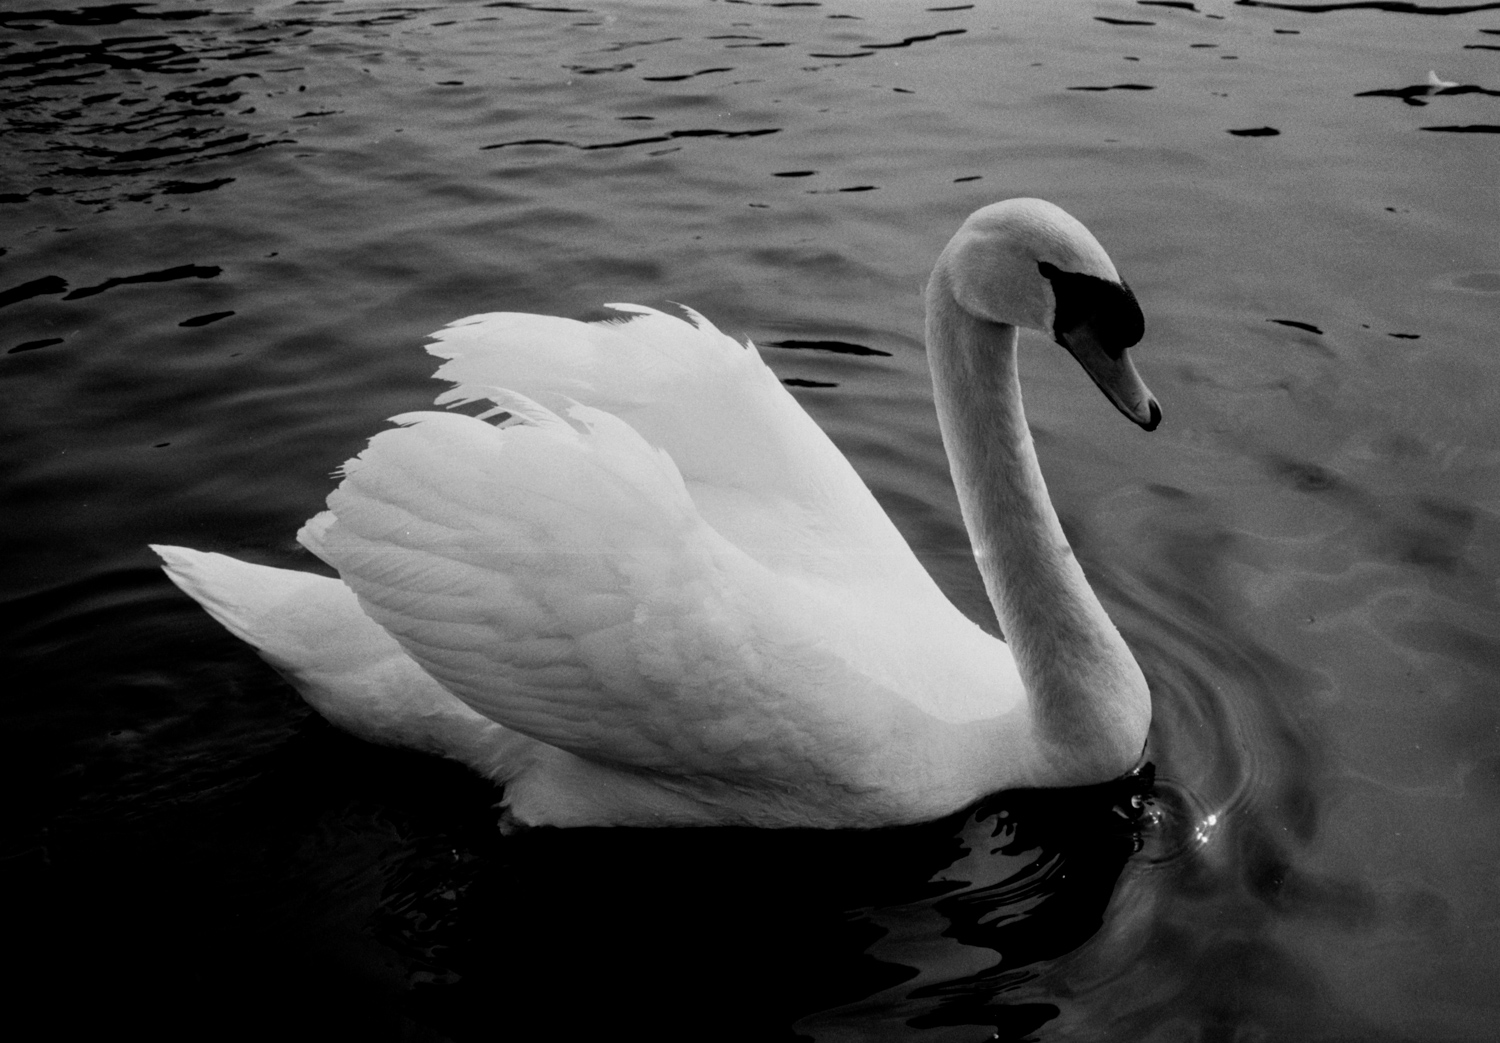 Photographing Swans With Fomapan 100